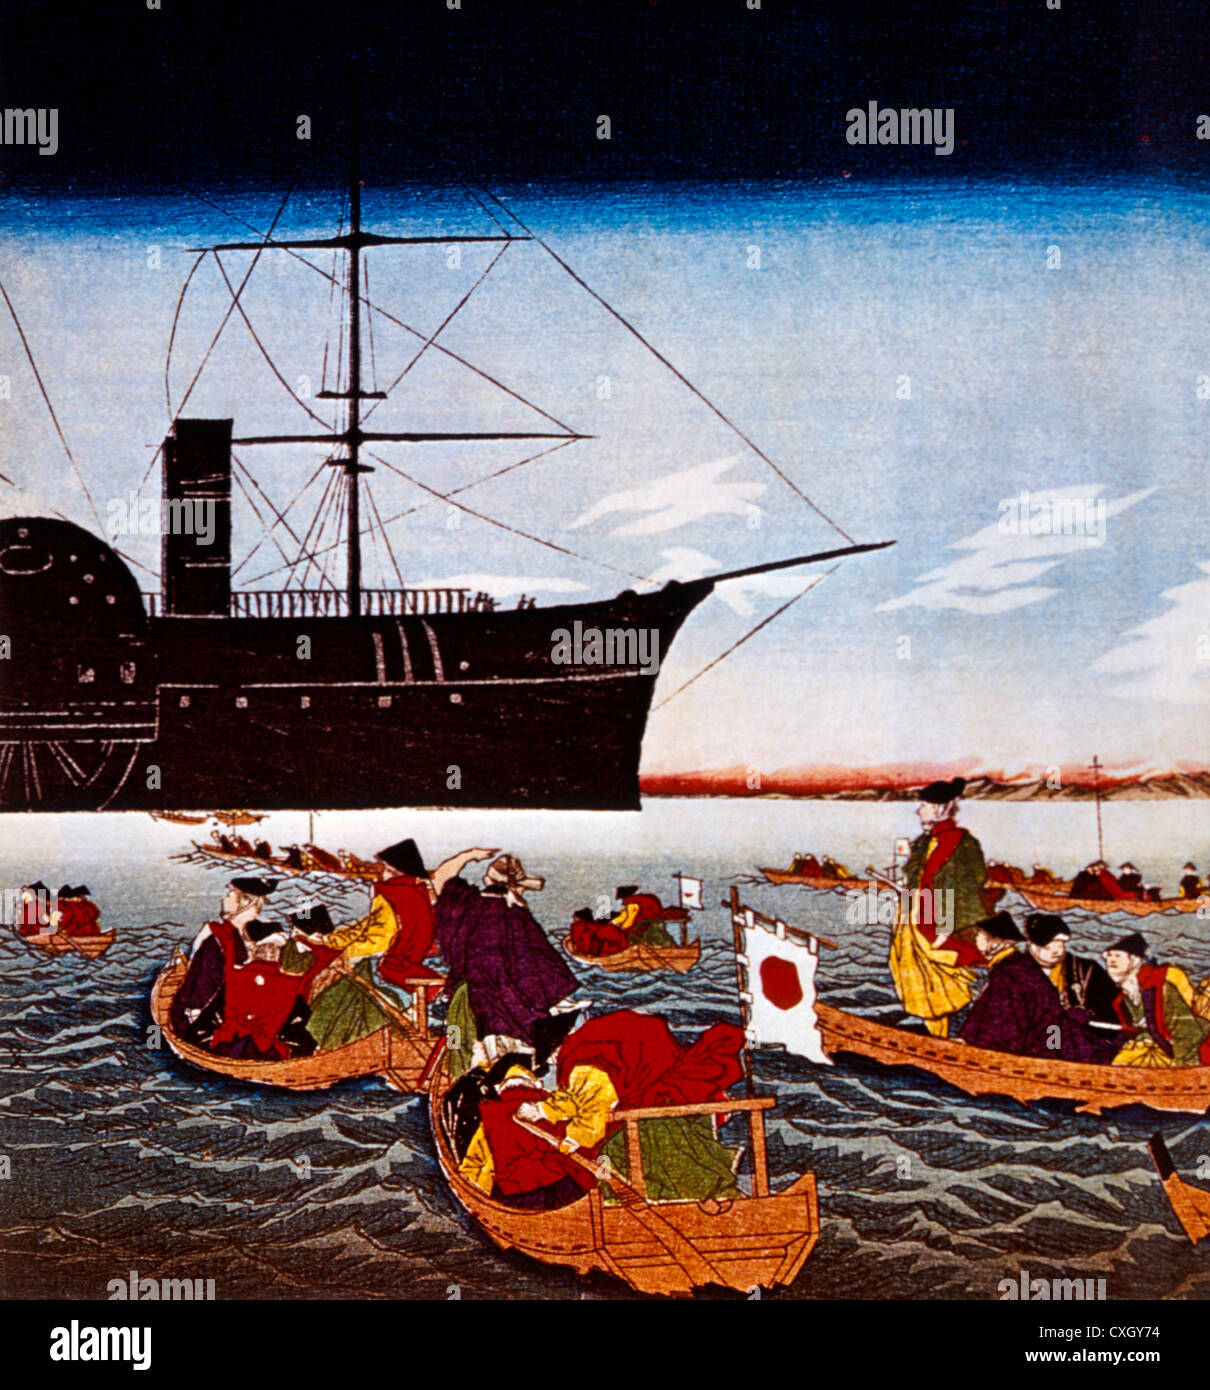 Commodore Matthew C. Perry's Black Ship Arriving in Japan, Print, 1853 Stock Photo